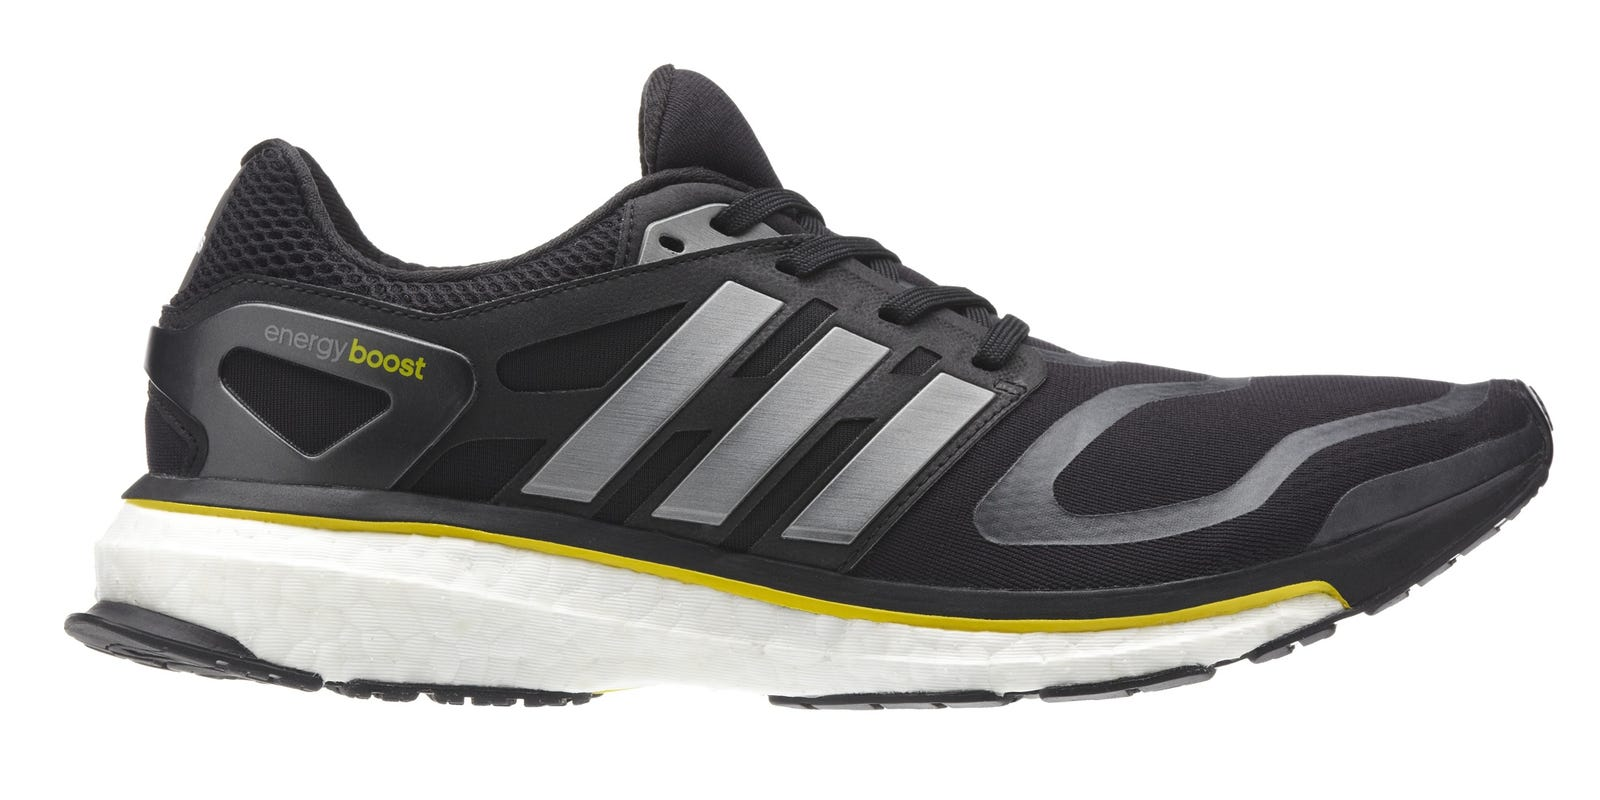 Adidas takes run at competitors with new shoe